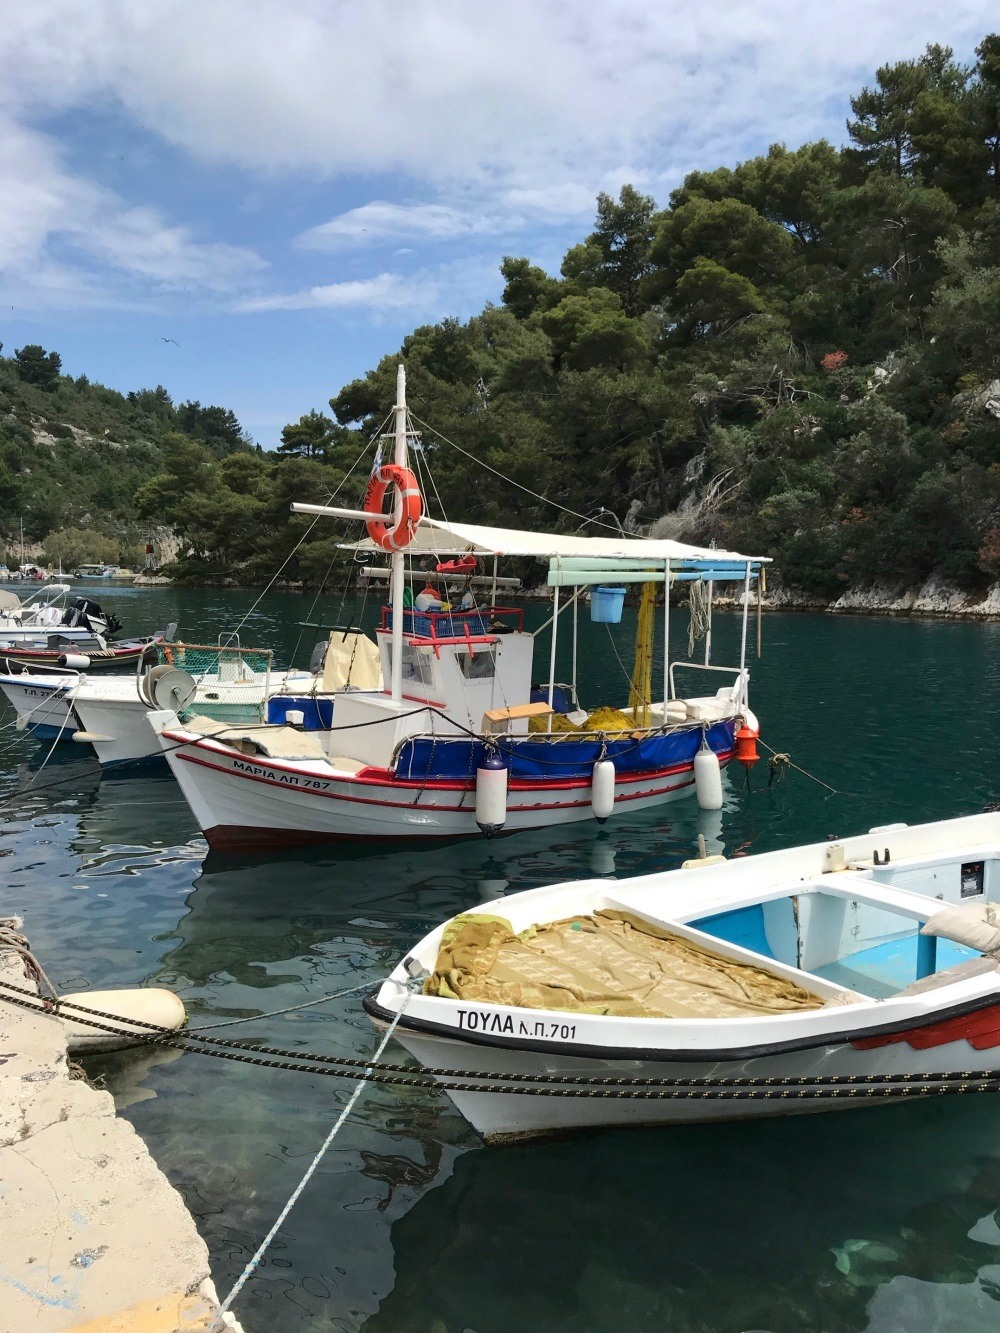 Fishing boats in Gaios Paxos Photo Heatheronhertravels.com